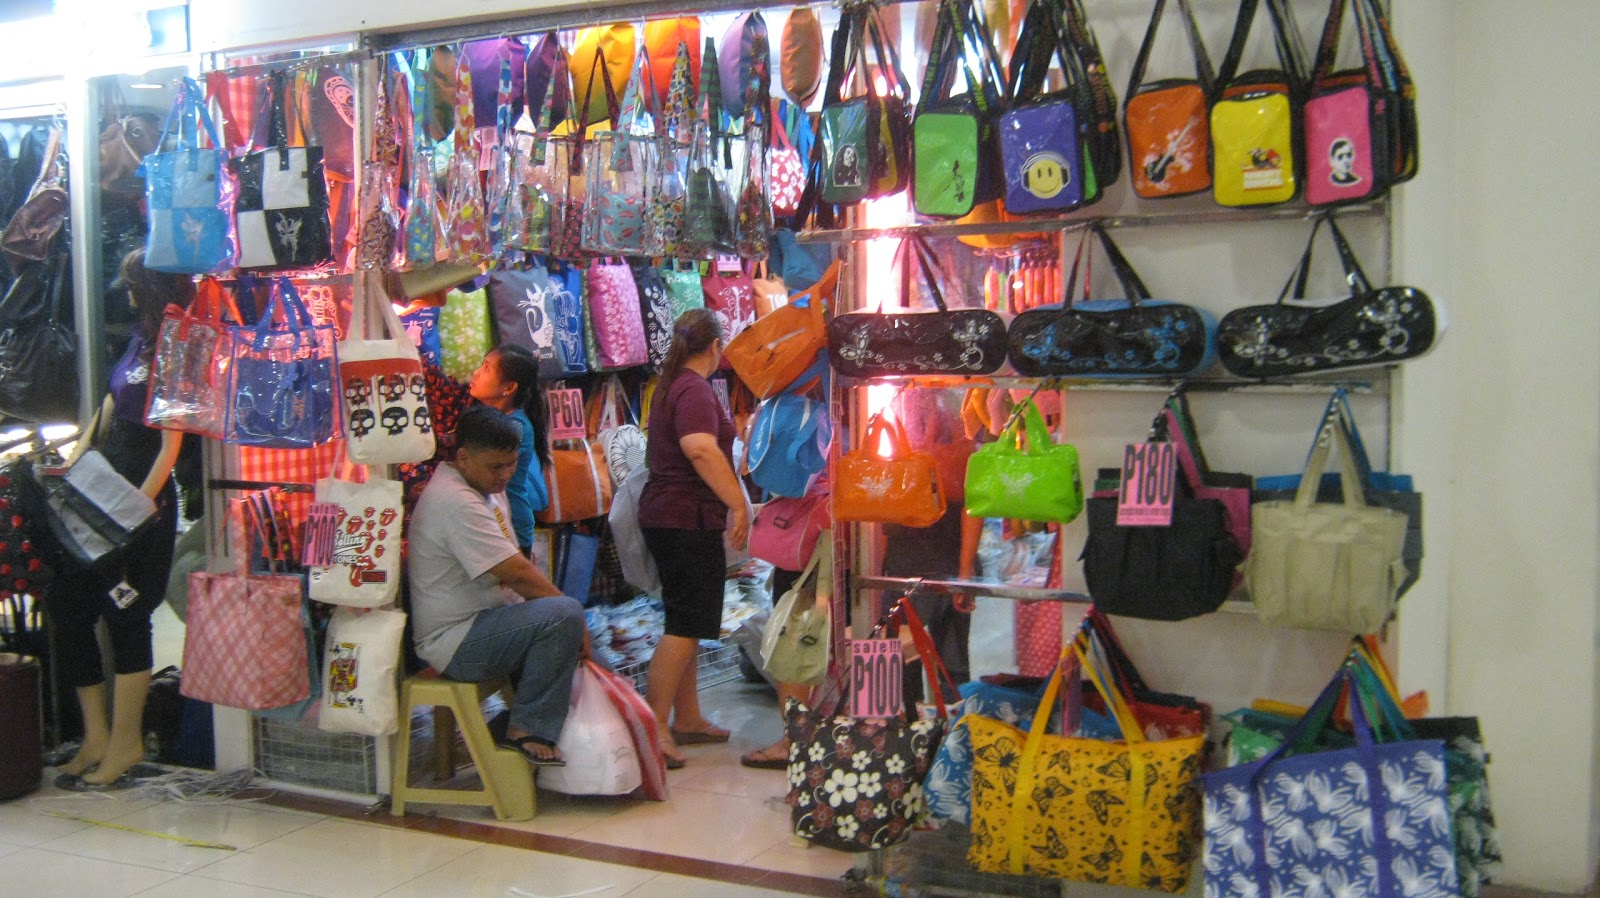 The Divisoria Malls - Defining Shopping in the Philippines